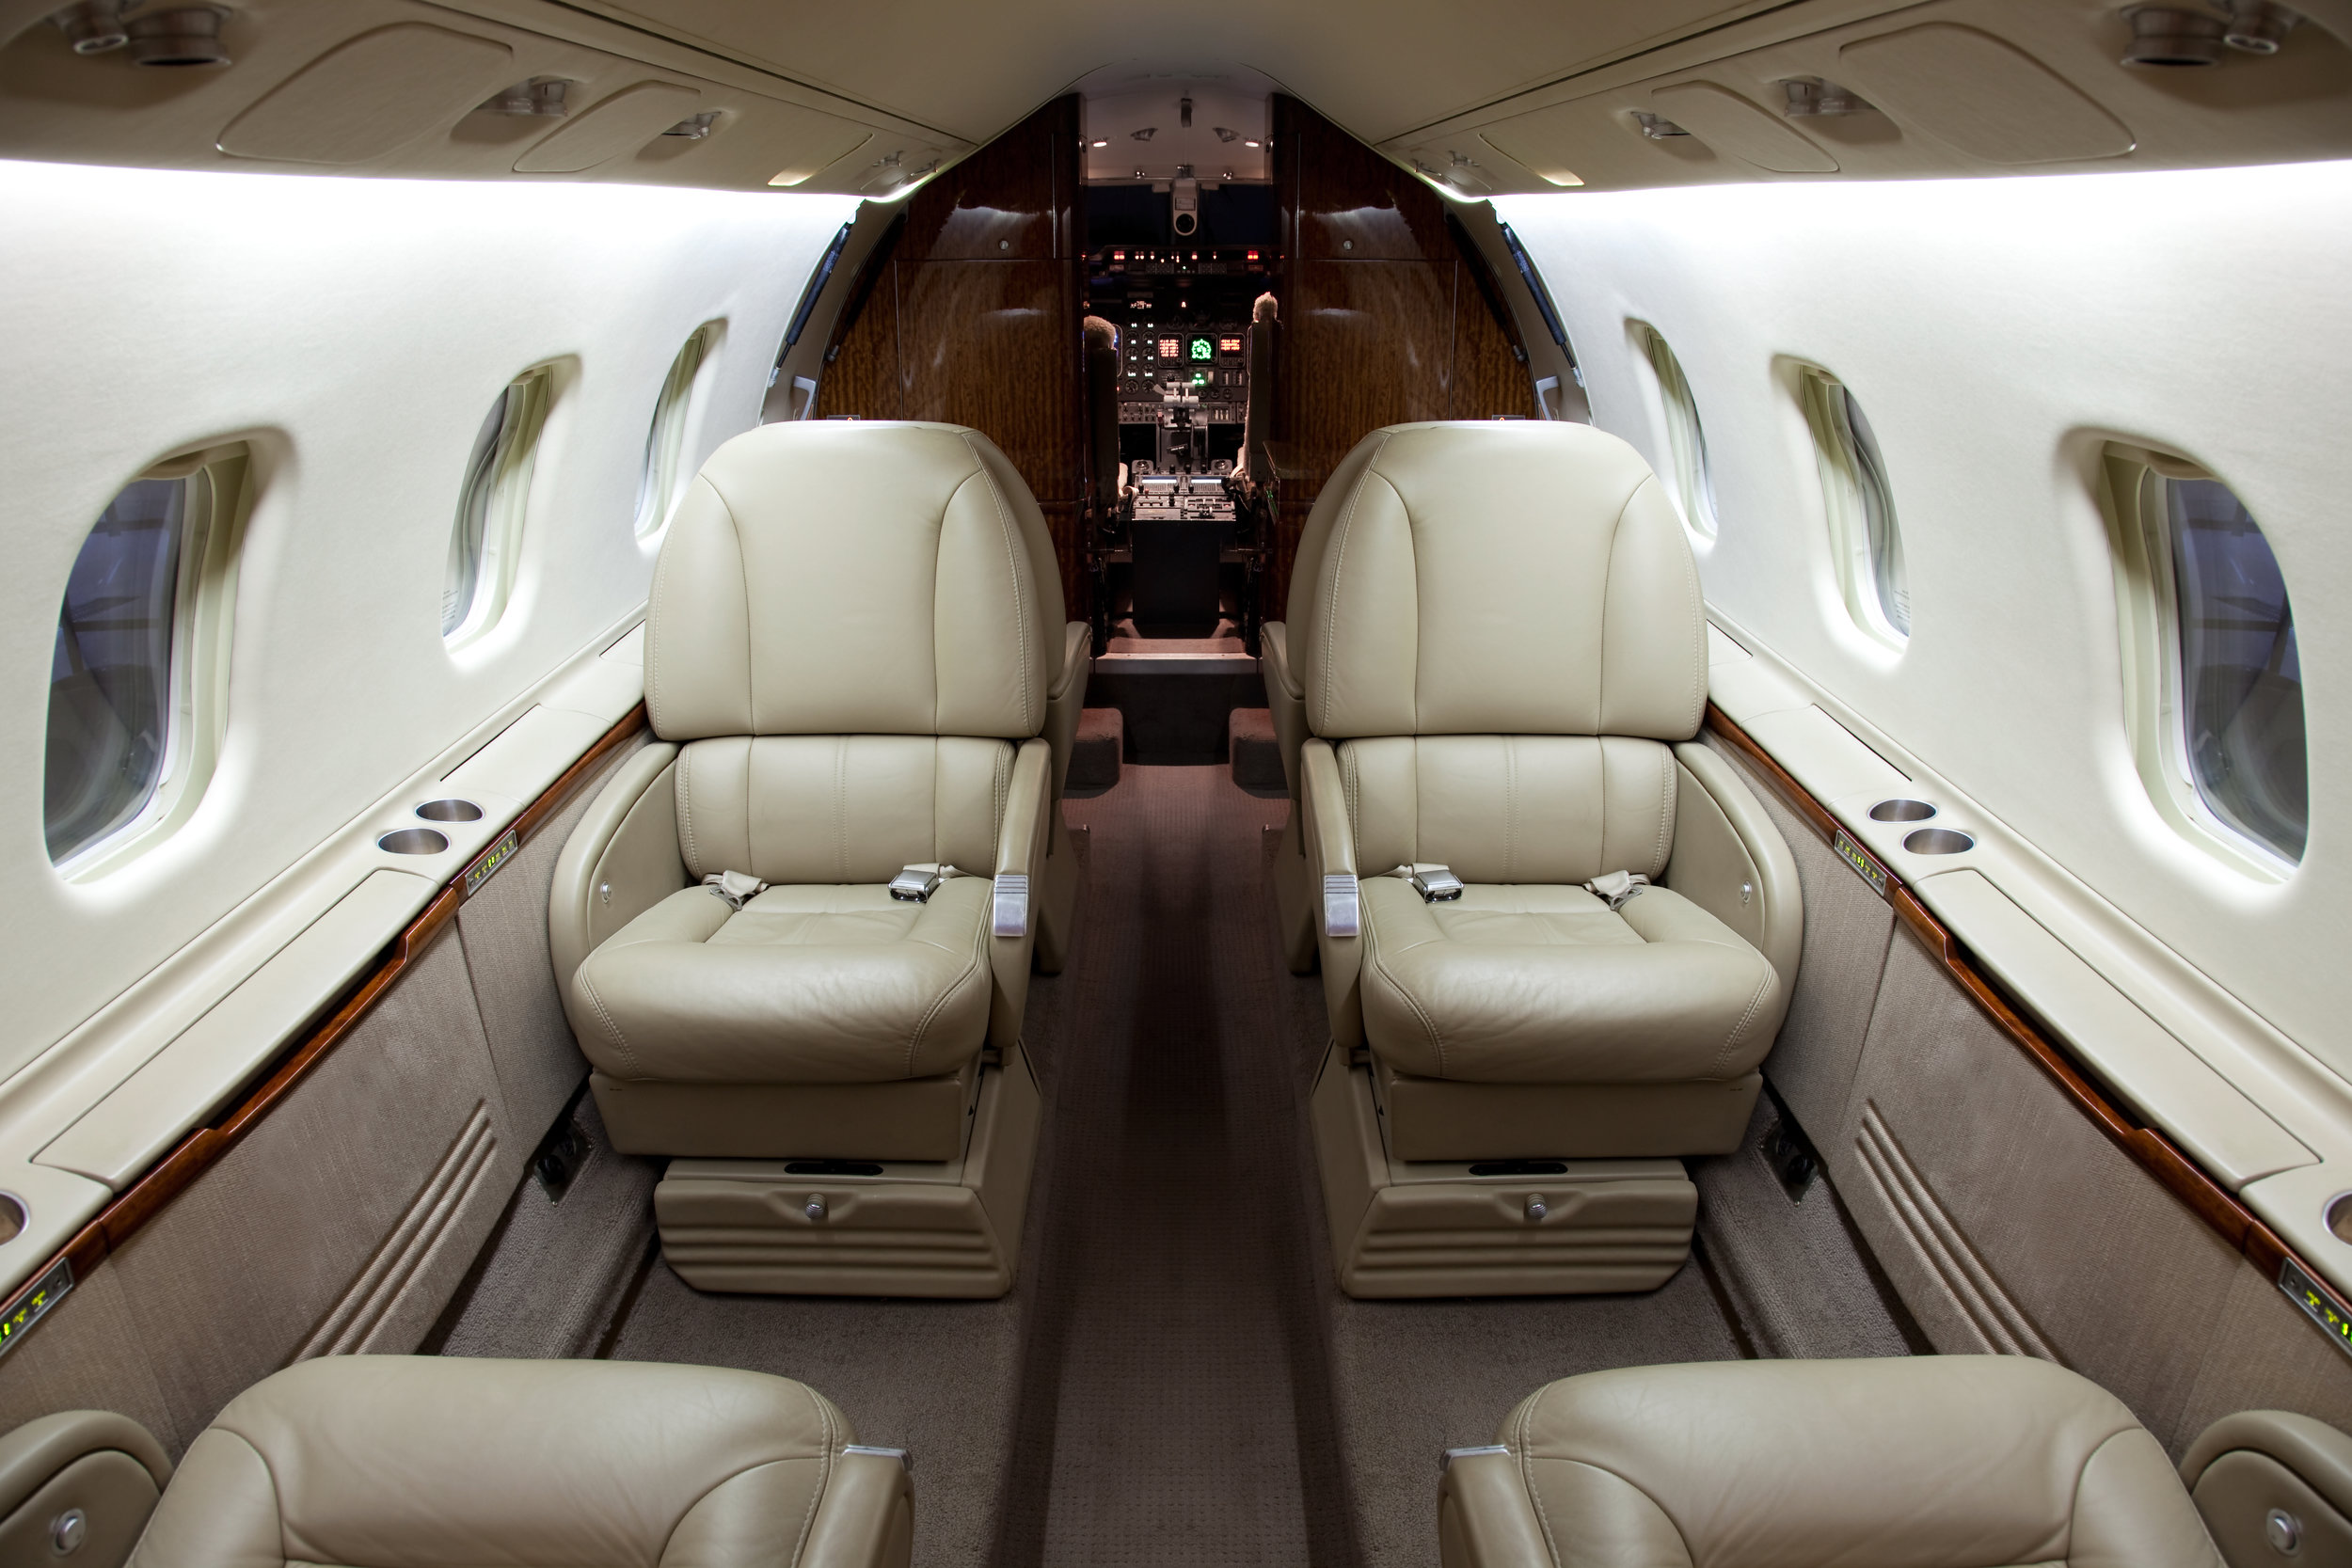 Corporate Jet Modifications - Our work on corporate jet interior modifications includes:- Cabin configuration changes- In-flight entertainment system installations- Avionics upgrades- Mobile phone installations- Audio system upgrades- Galley and toilet installations- Storage cabinets- Passenger tray tables- Interior trim upgrades